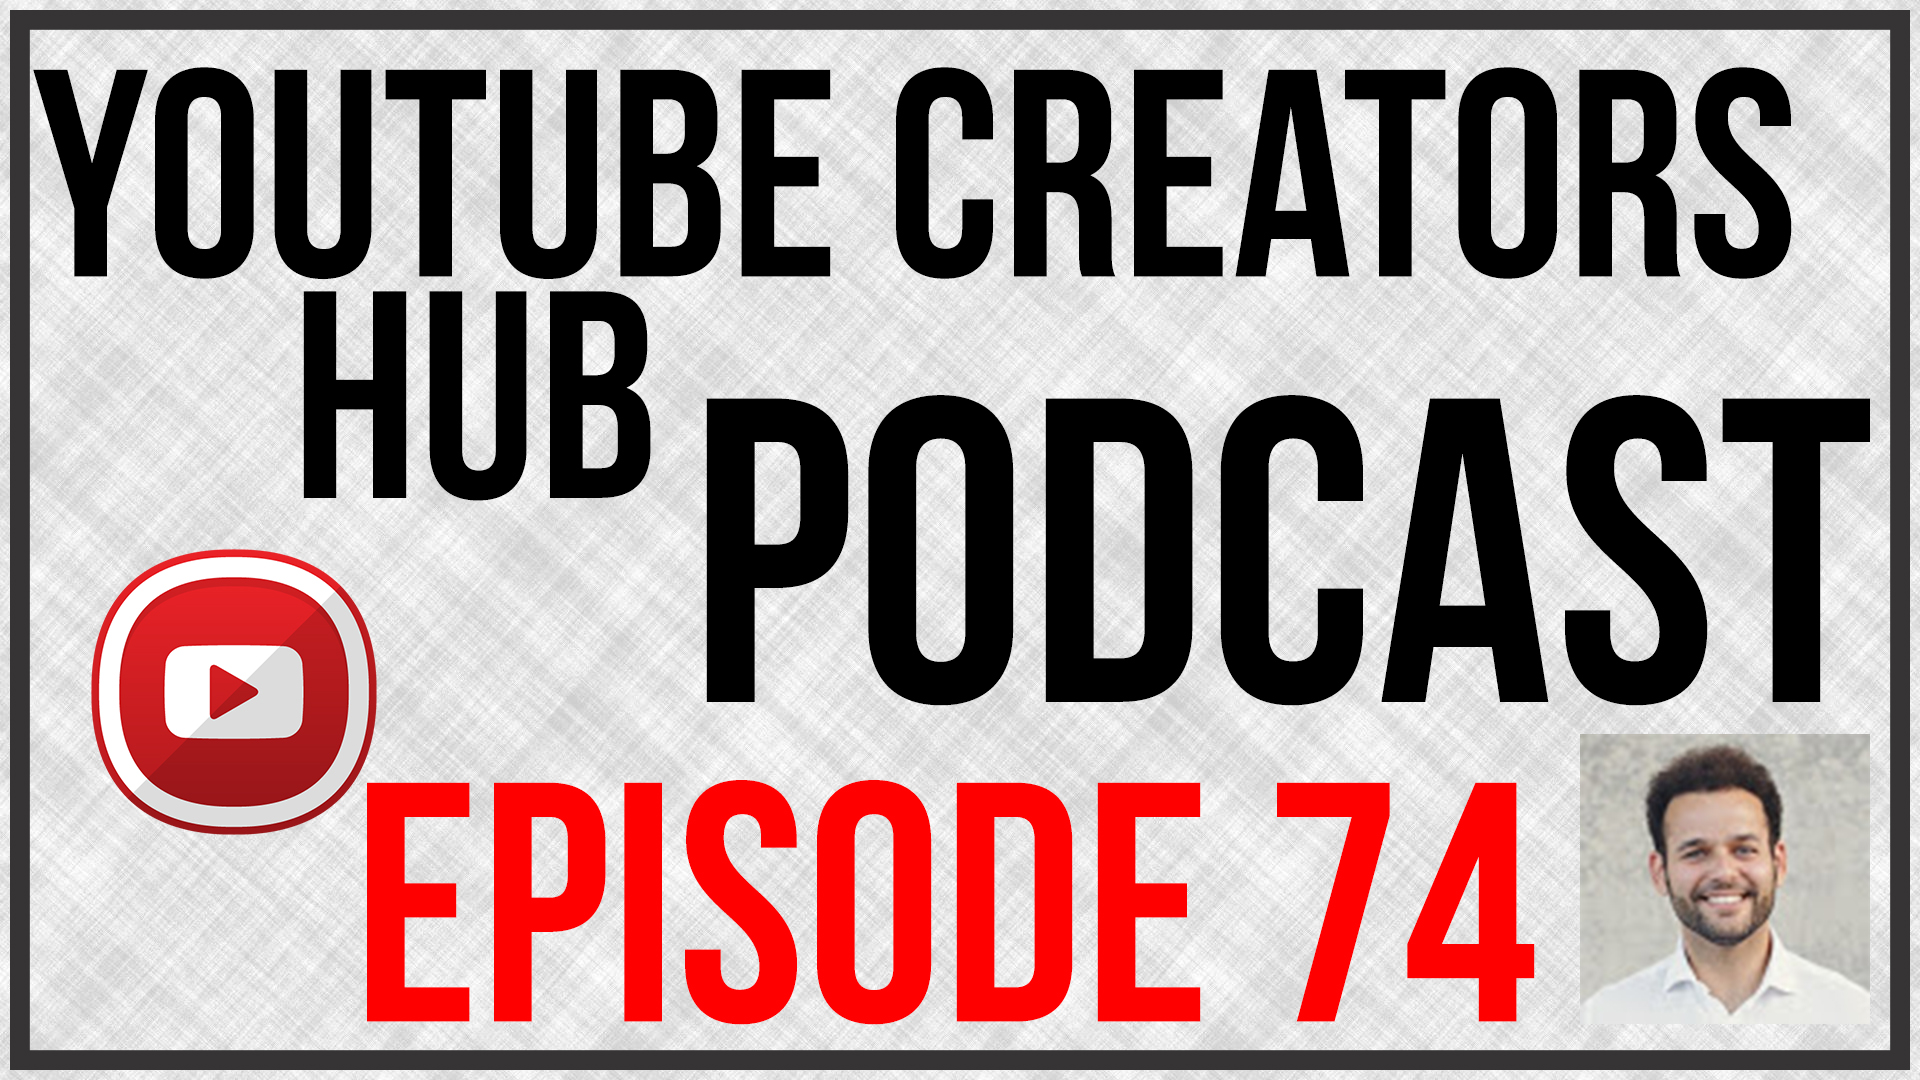 YouTube Creators Hub Episode 74